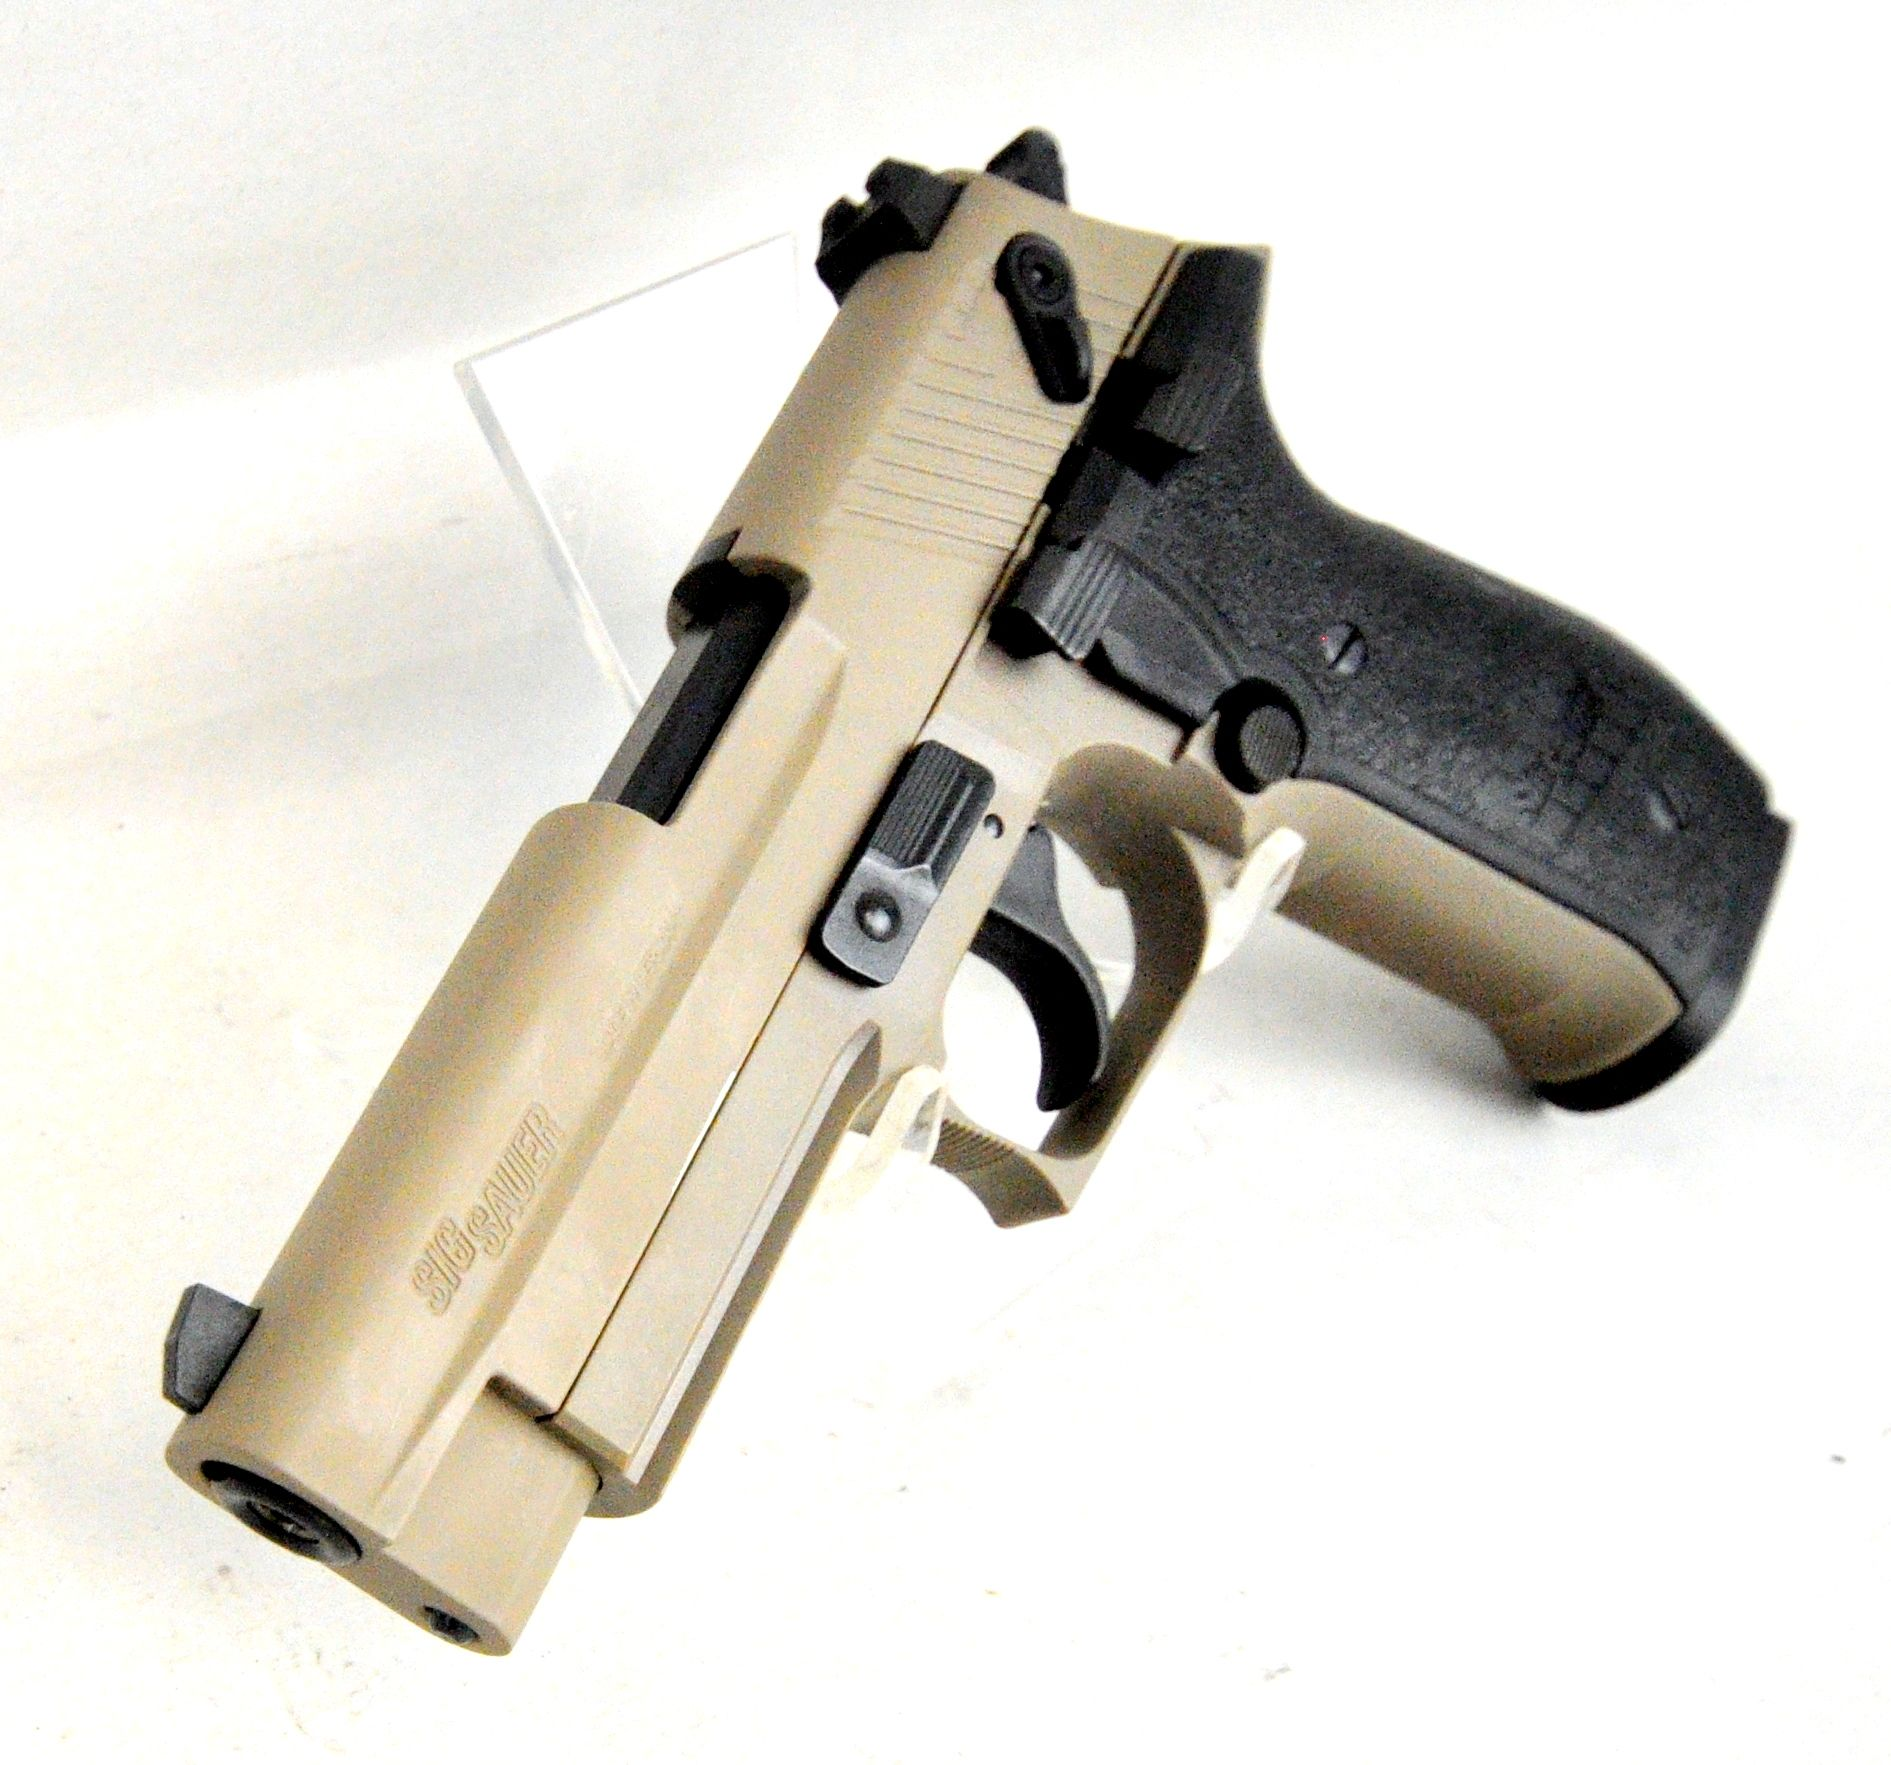 "Sig Sauer Mosquito FDE .22 LR. The Mosquito from Sig Sauer is a scaled down, rimfire version of their popular P226, and is ideal for plinking. It is ergonomically built on a tough polymer frame and features an integral accessory rail, rugged blowback system, adjustable sights, and multiple safety devices. Flat Dark Earth finish. 10-round capacity of .22 LR. 3.9"" barrel. 24.6 oz. [New in Box] $299.99"